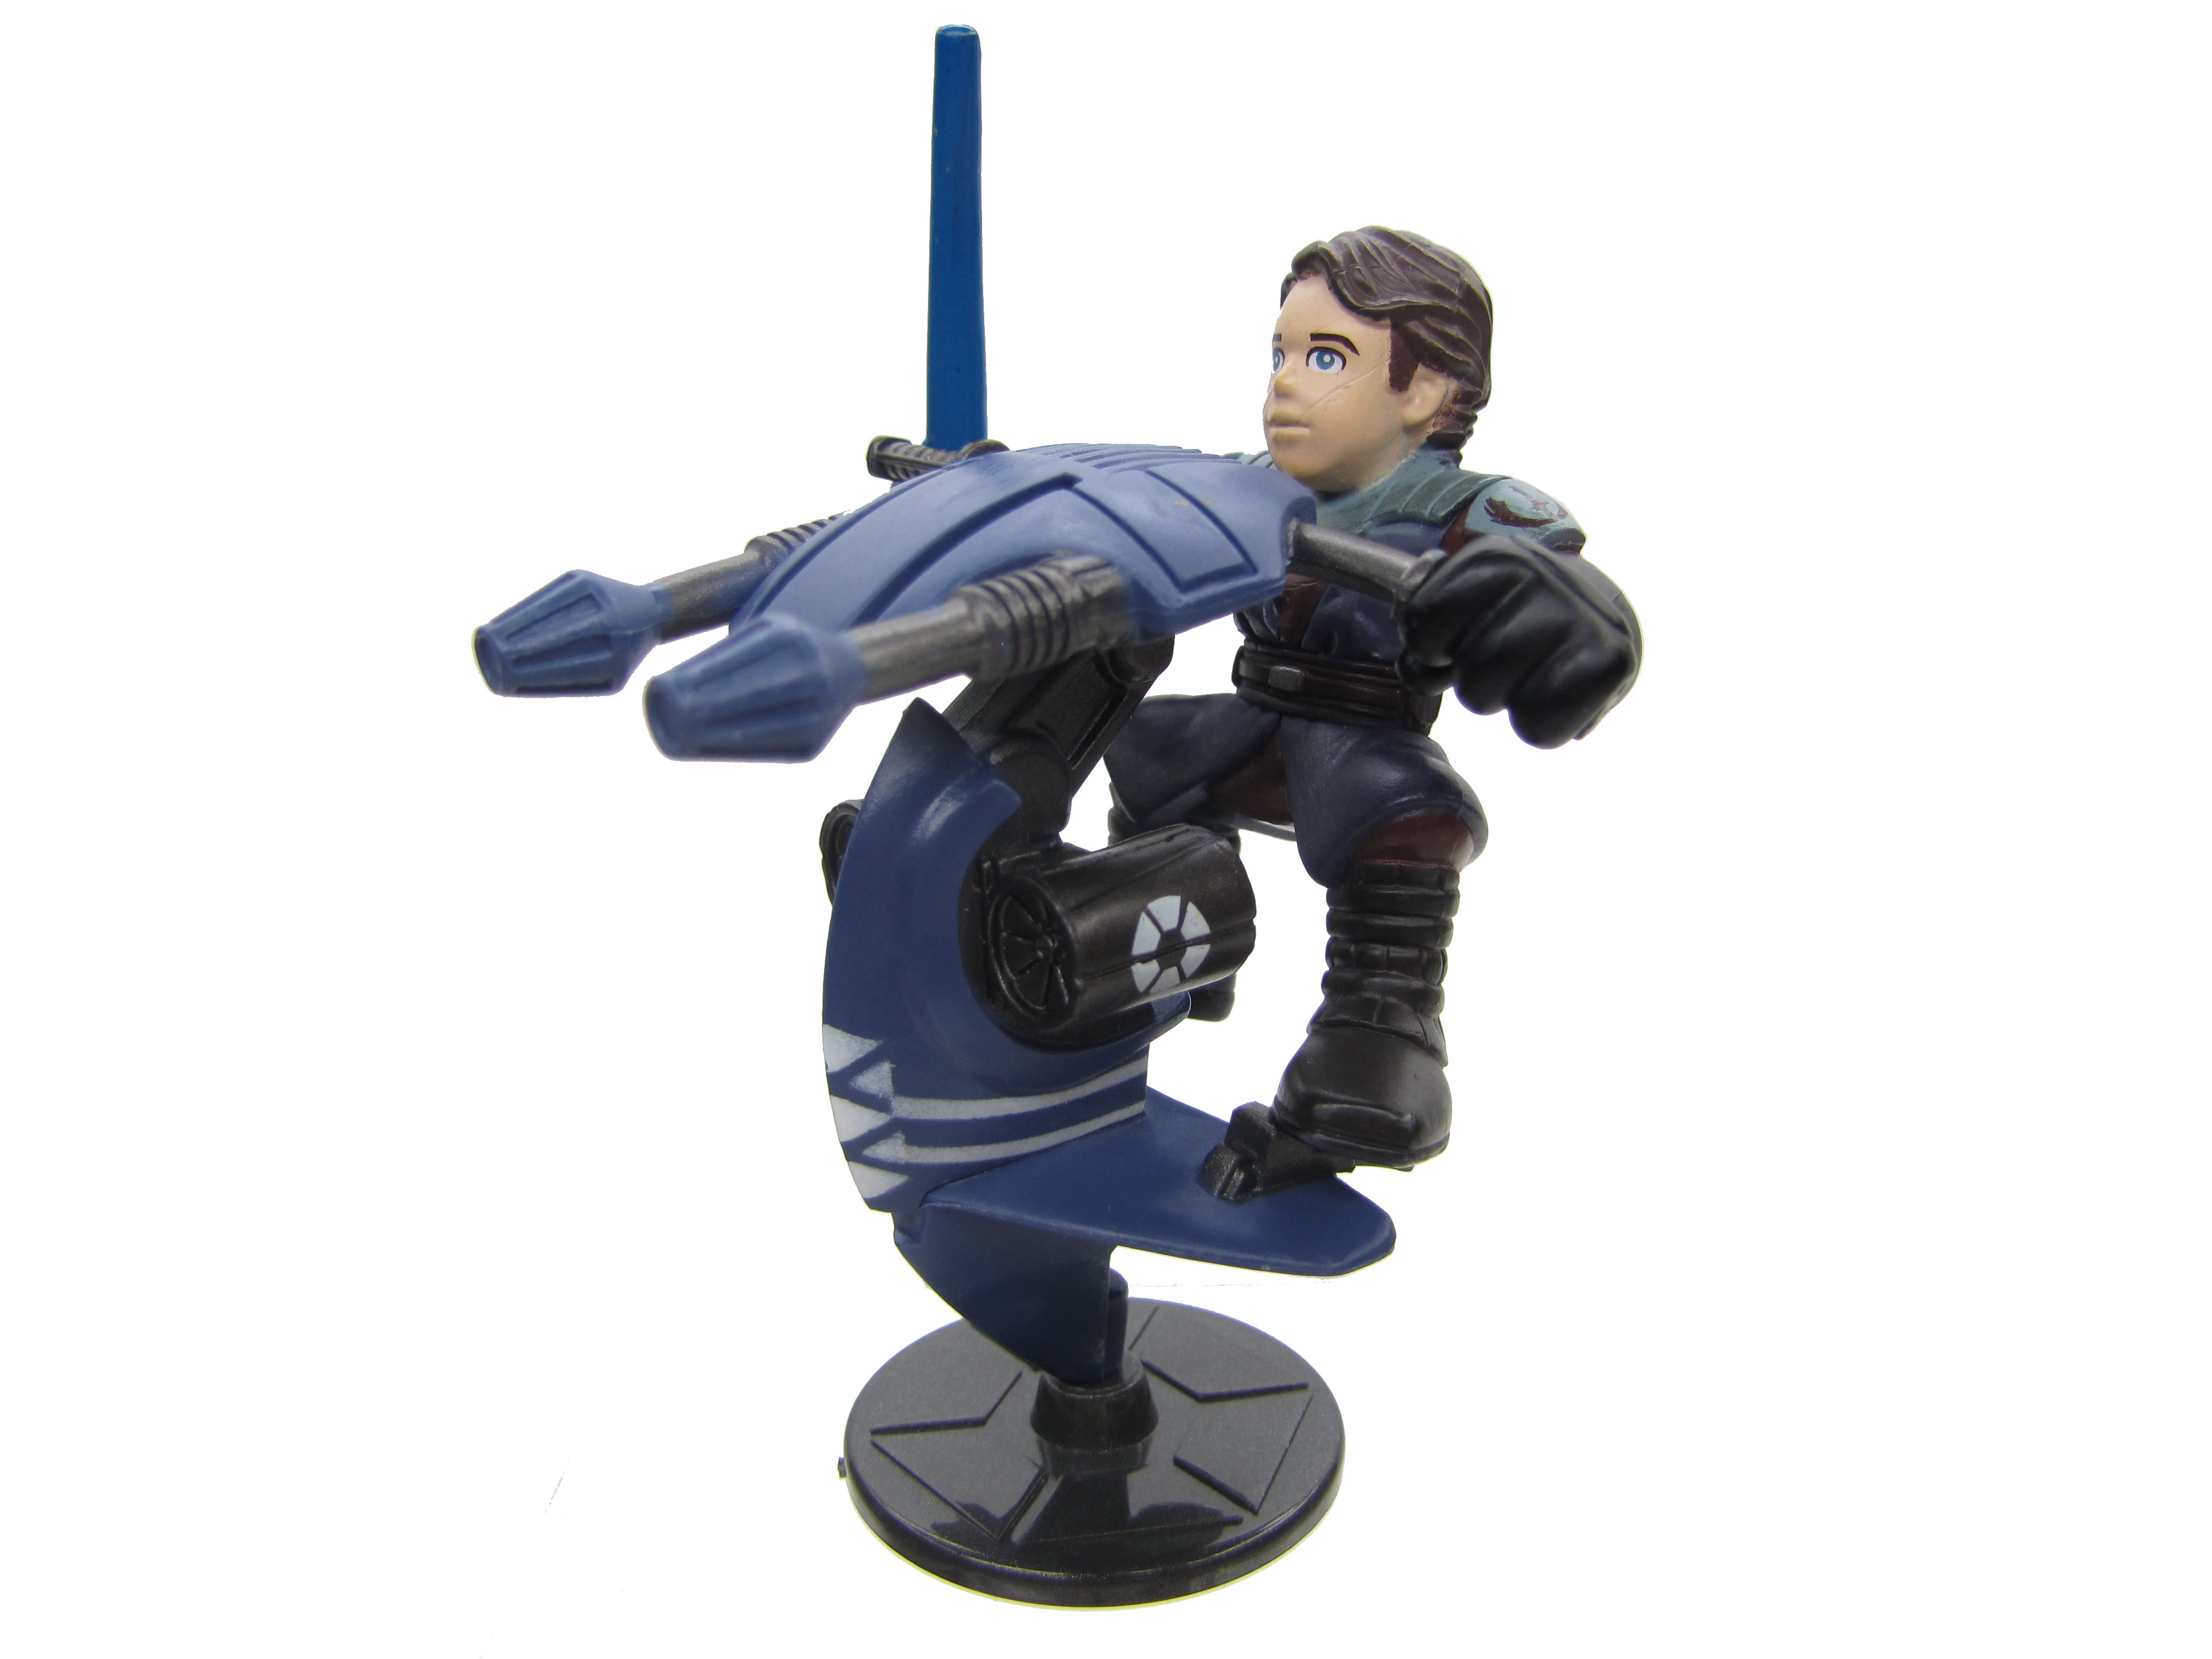 Star Wars Galactic Heroes Anakin Skywalker Clone Wars with STAP